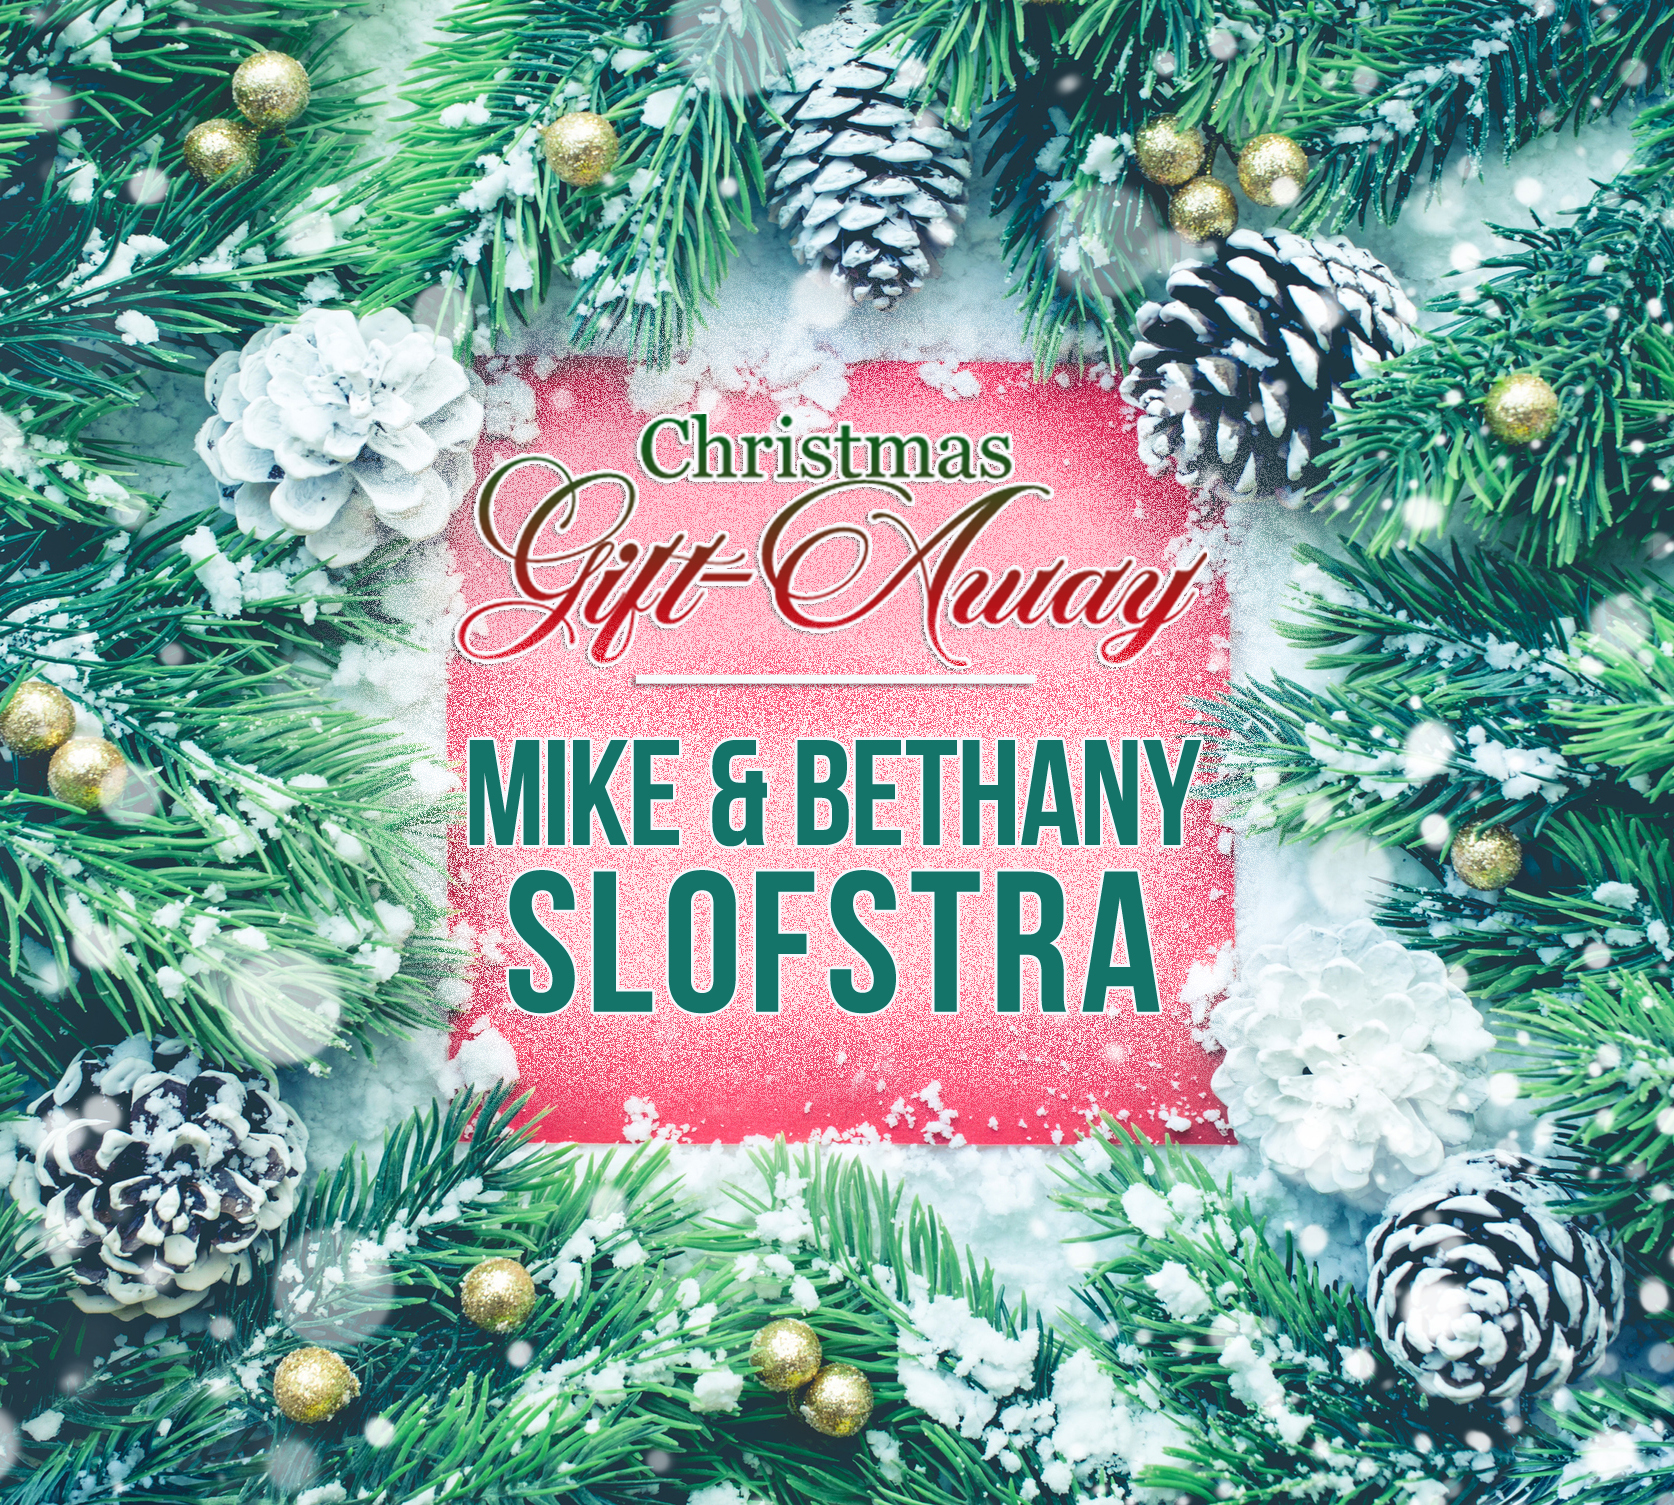 Christmas Gift Away Recipients - Mike and Bethany Slofstra